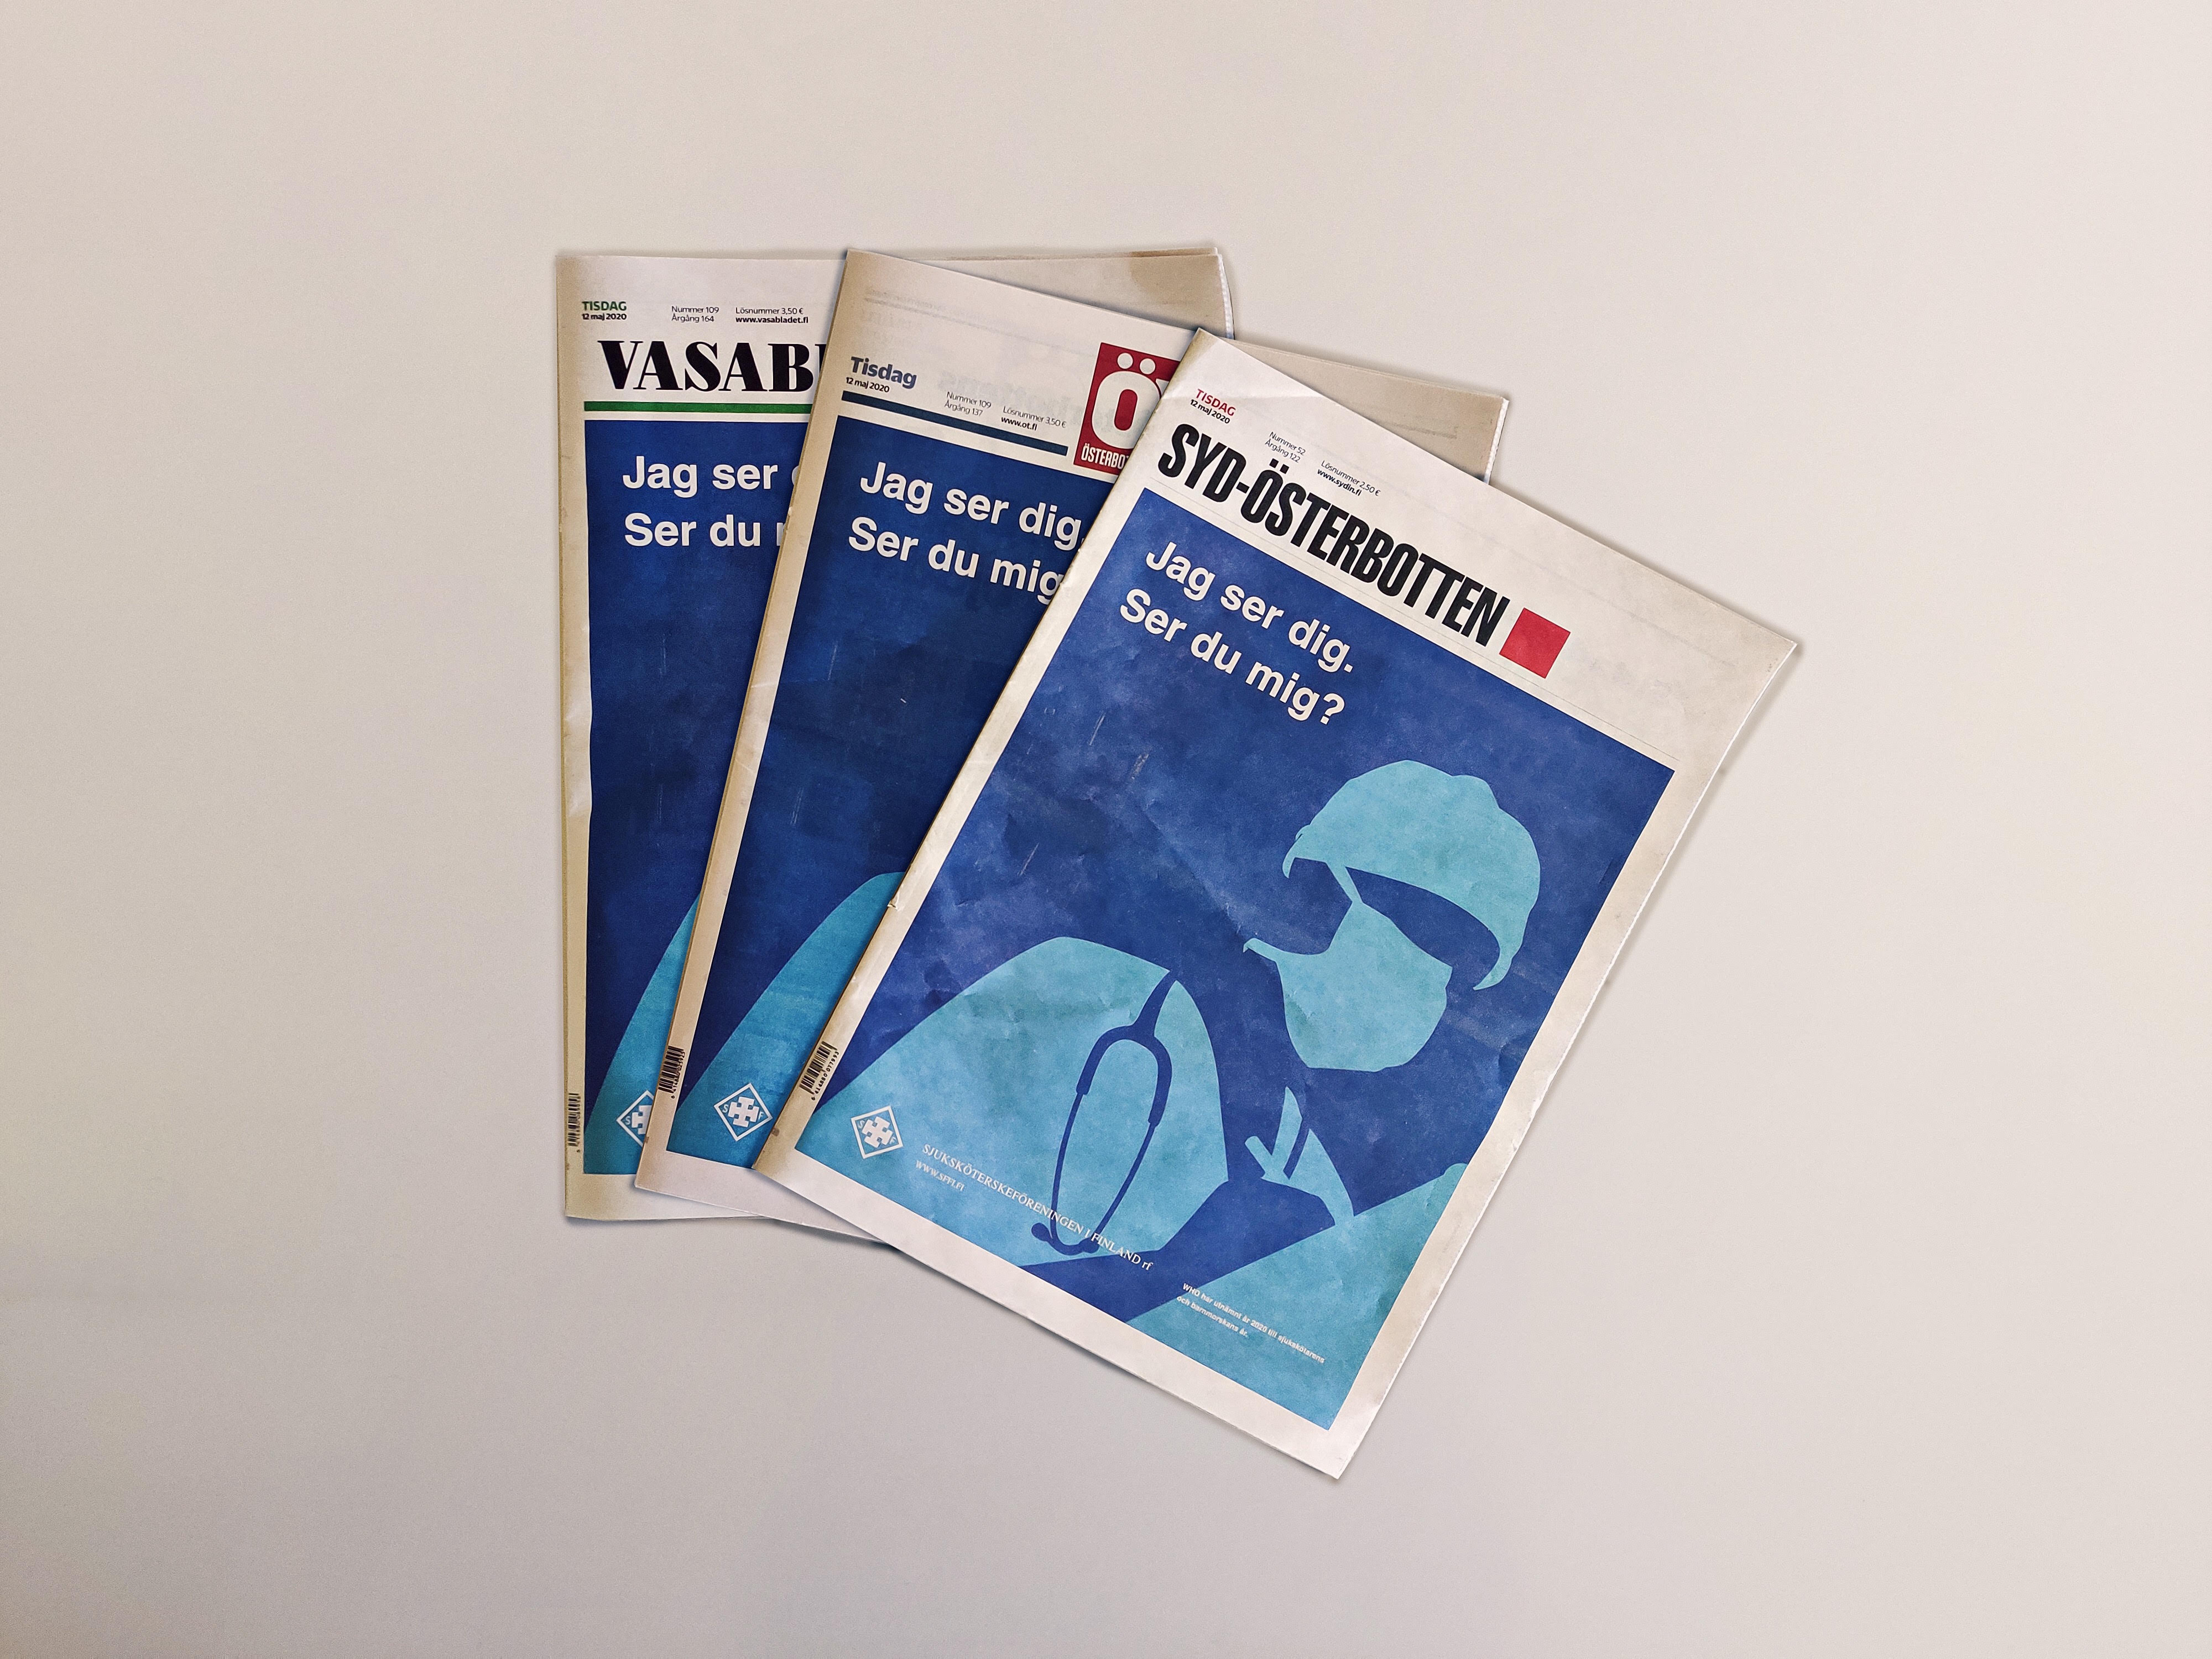 Newspapers with the ad cover